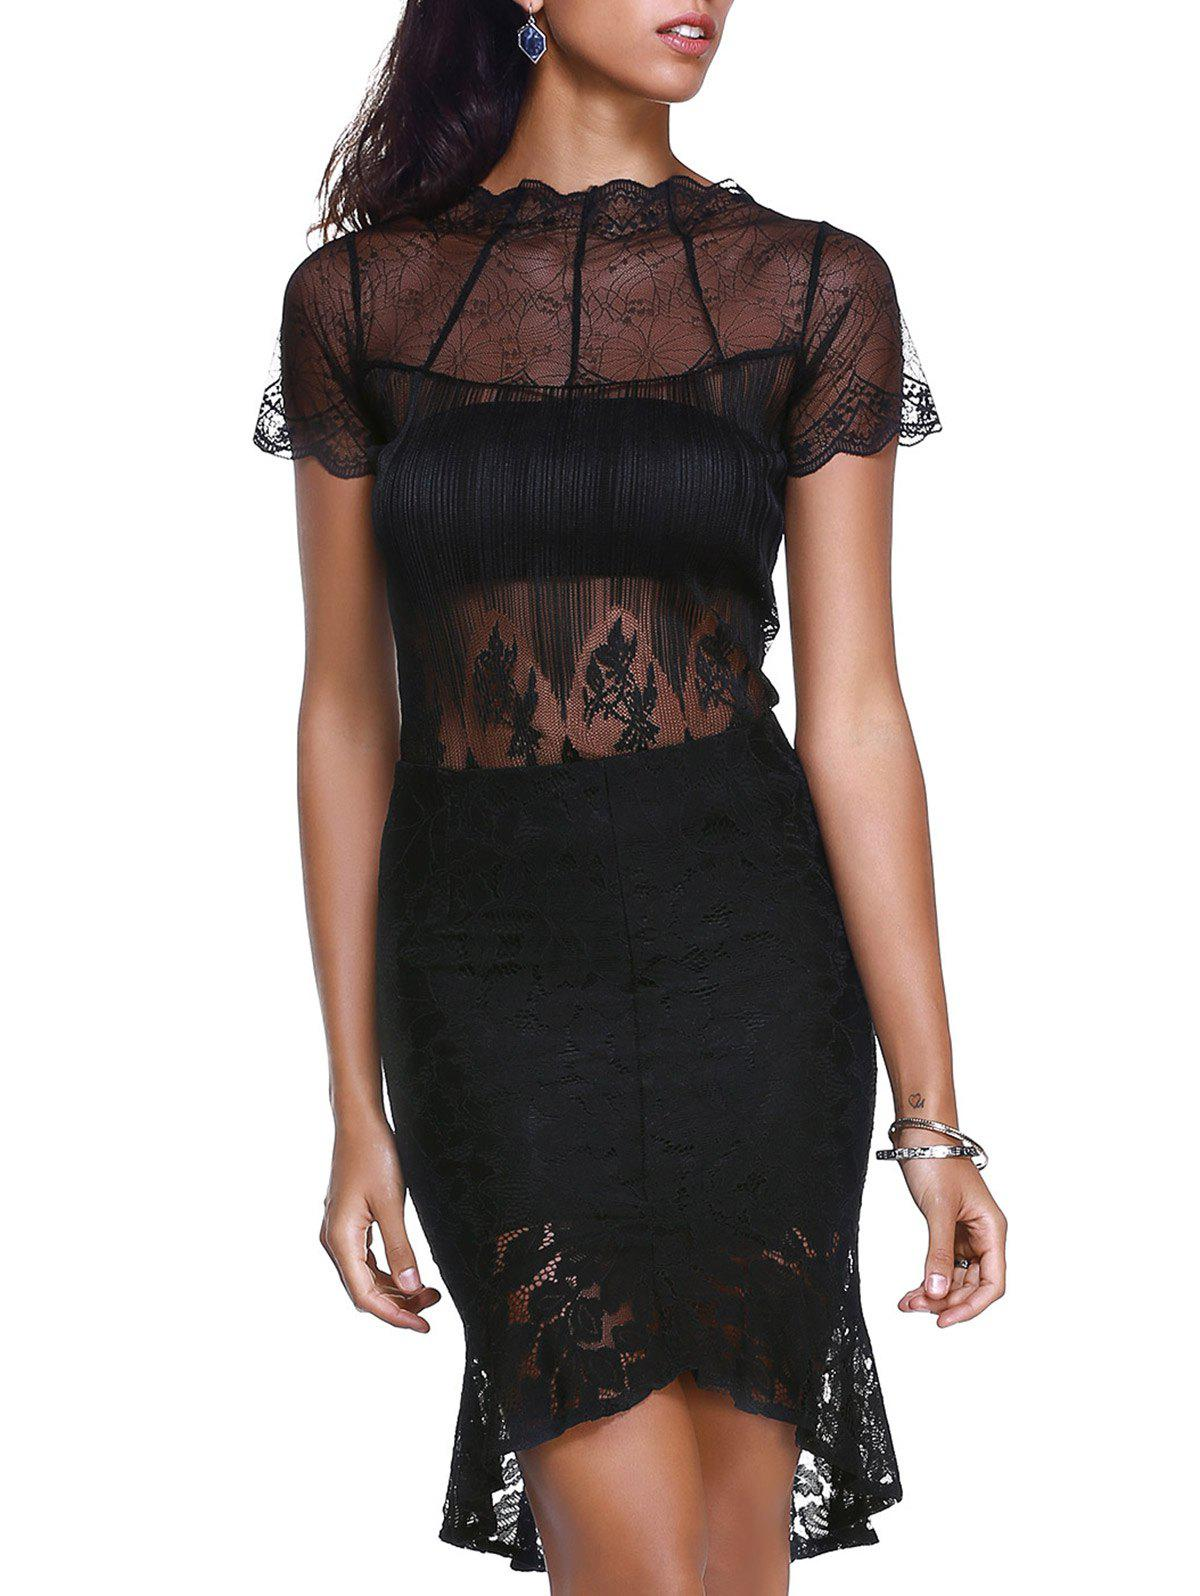 Women's Graceful See-Through Round Neck Top and Pencil Skirt